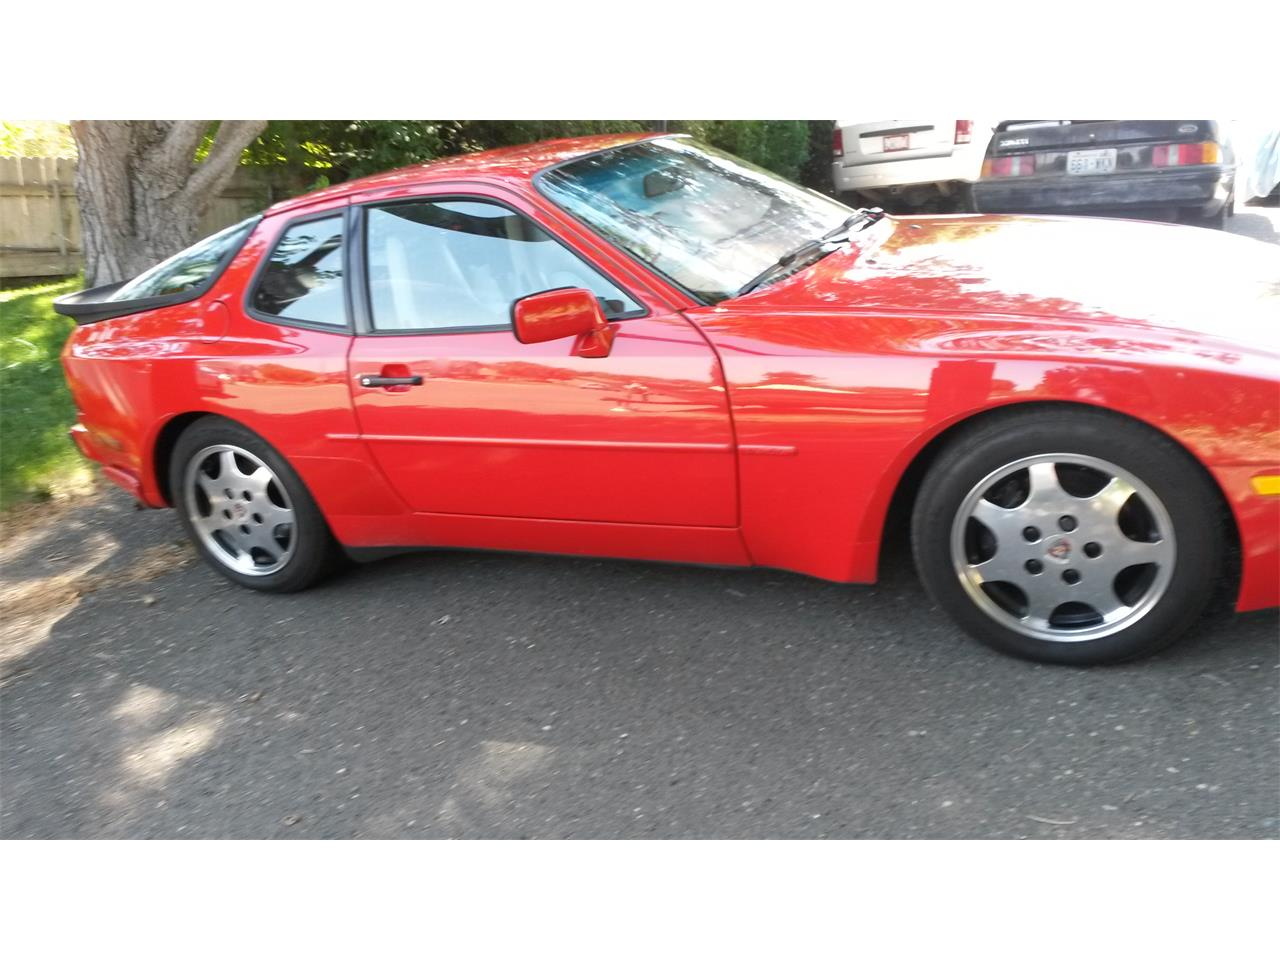 Large Picture of '89 Porsche 944S2 - $25,000.00 Offered by a Private Seller - L7PM